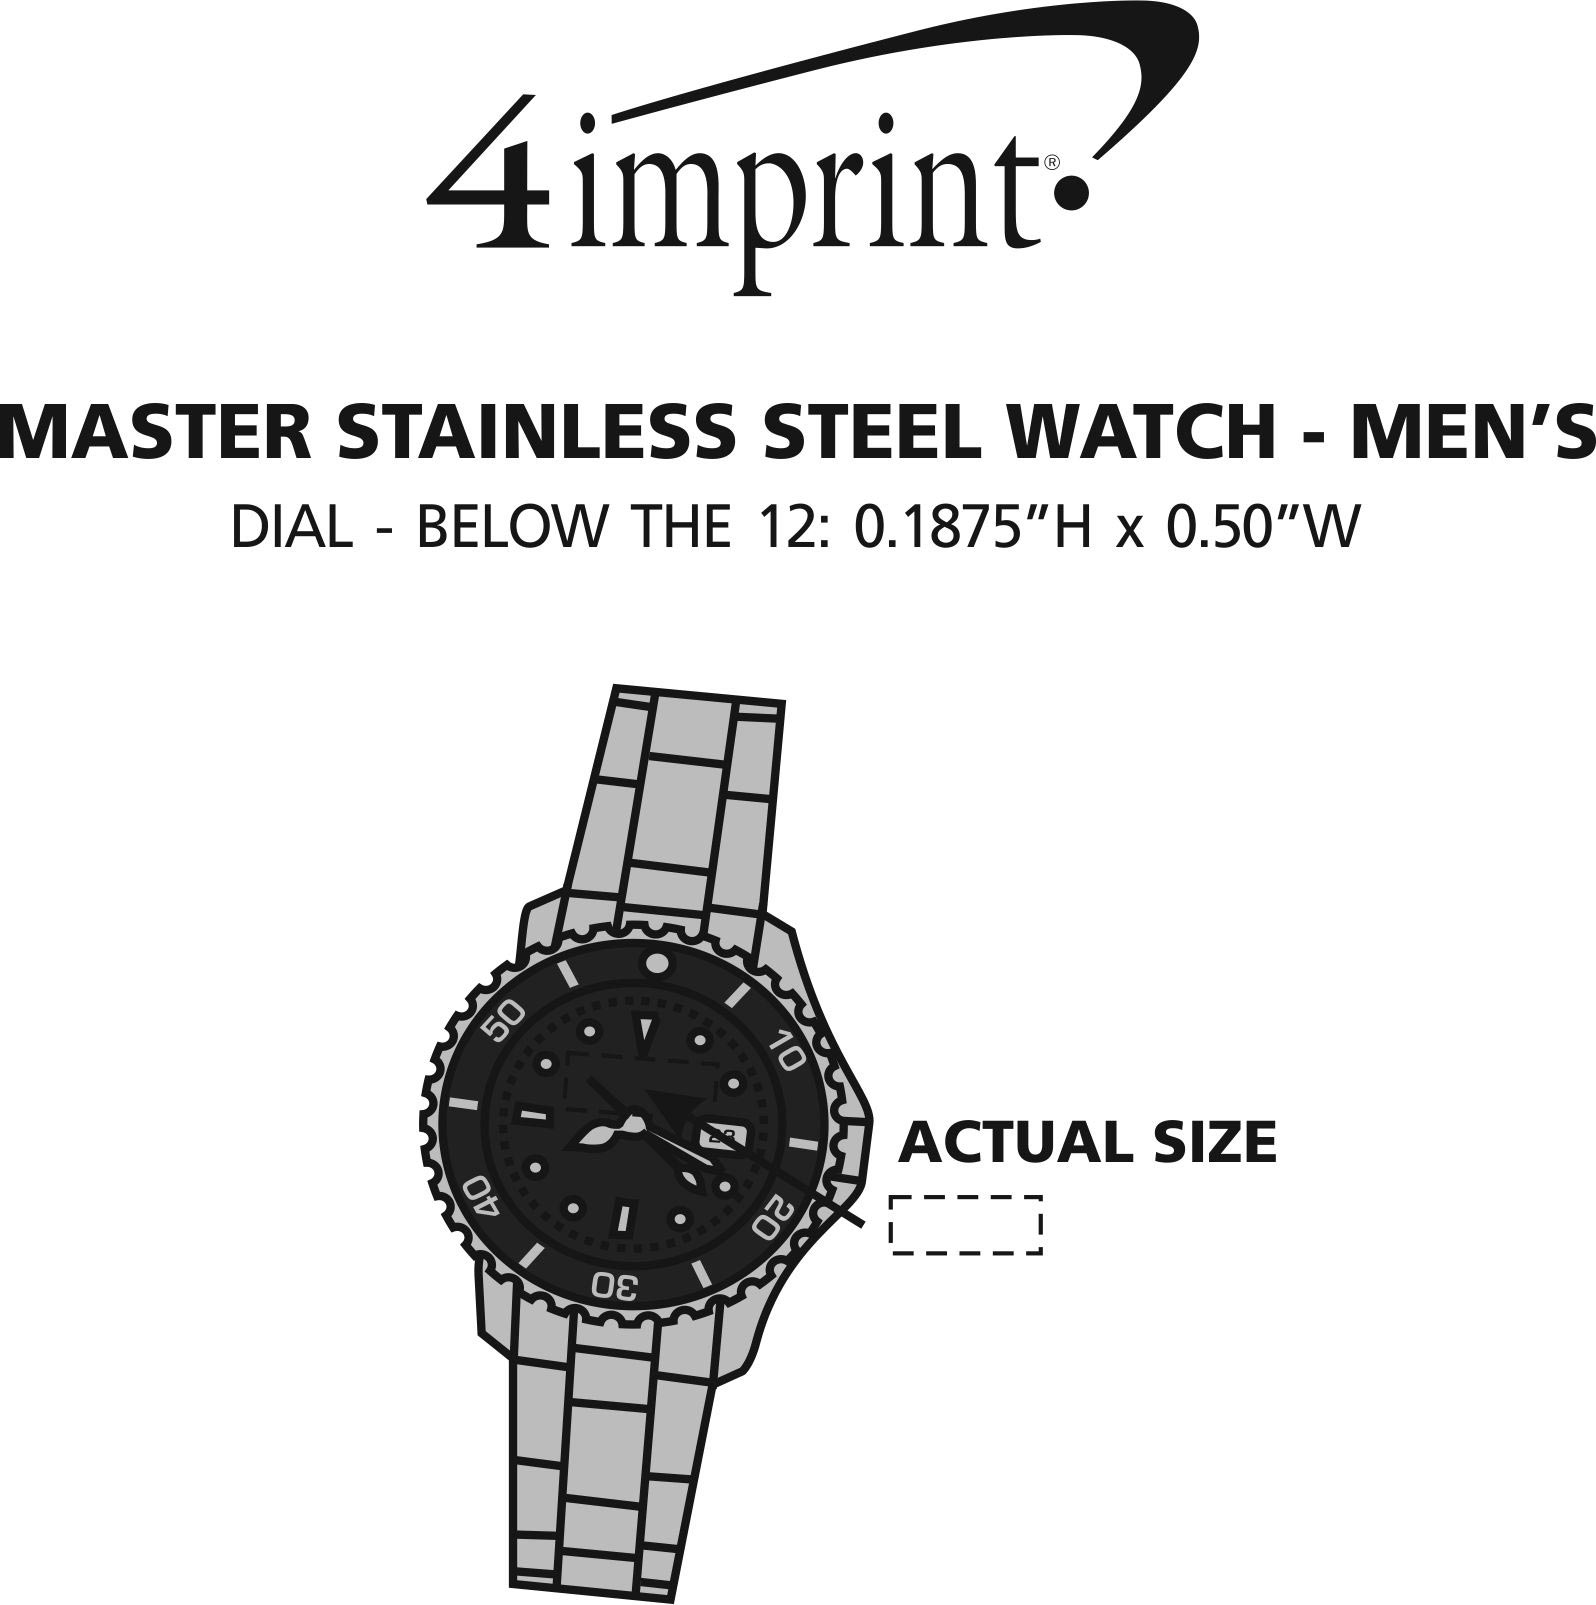 Imprint Area of Master Stainless Steel Watch - Men's